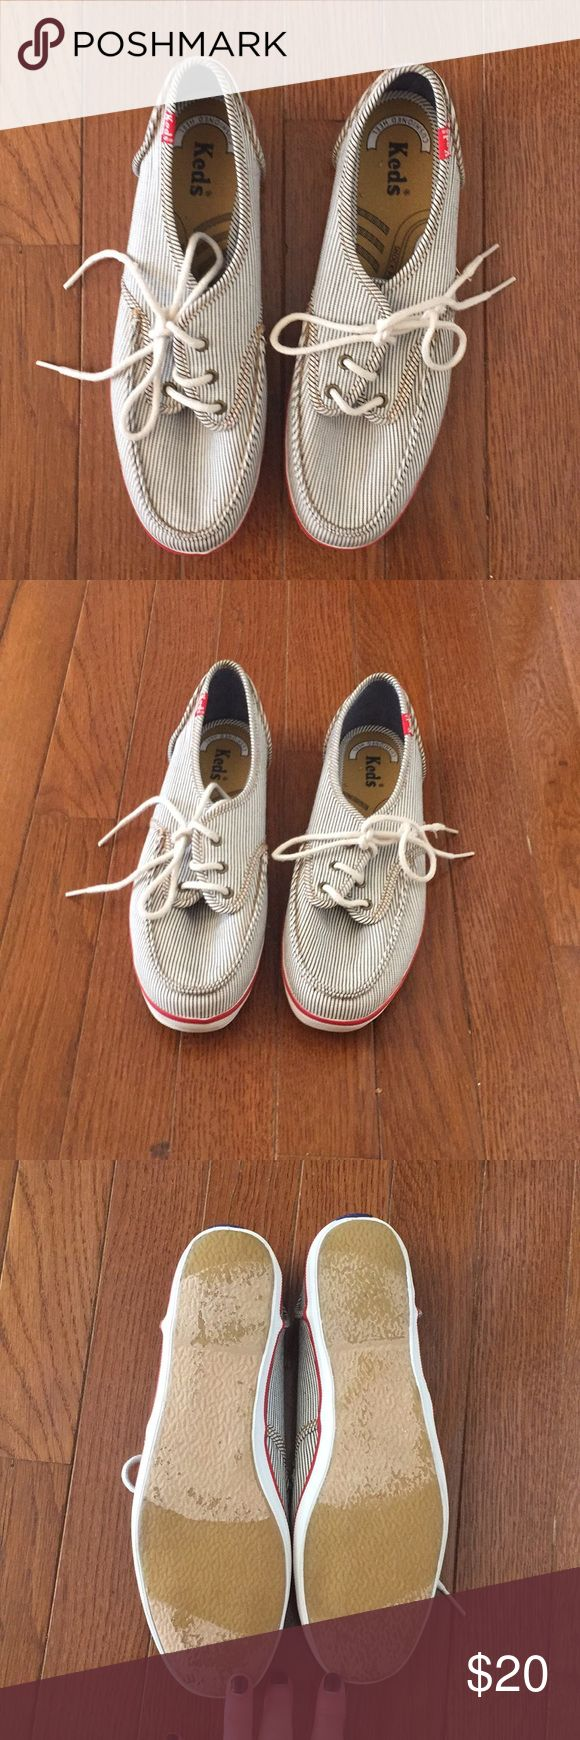 Keds shoes Keds shoes with a stripe design Keds Shoes Athletic Shoes